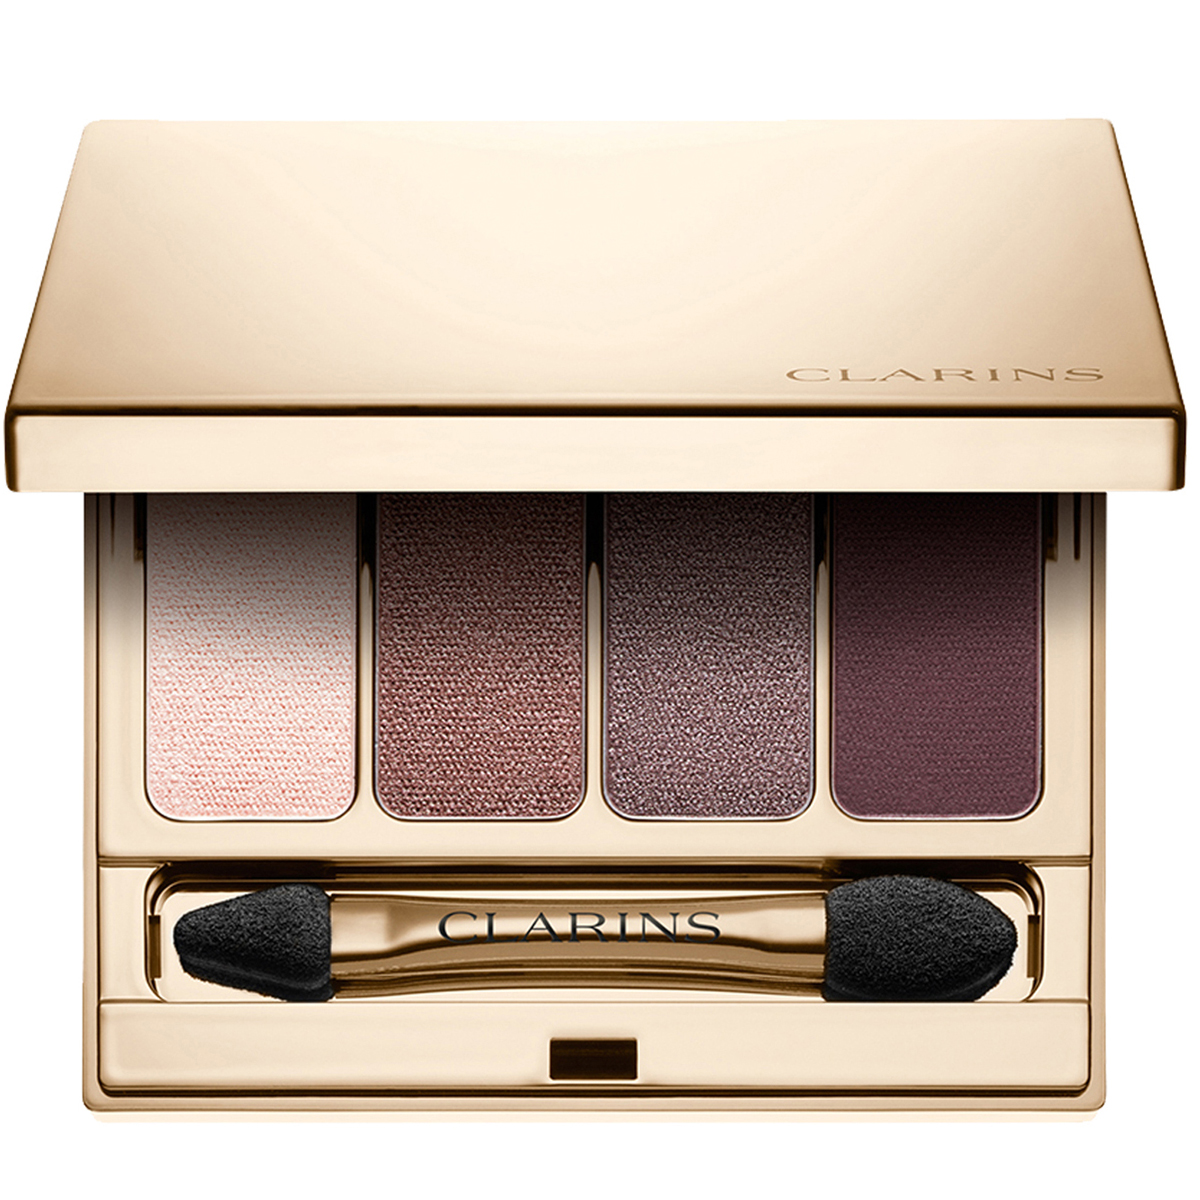 Clarins 4 Colour Eyeshadow Palette 04 Oud